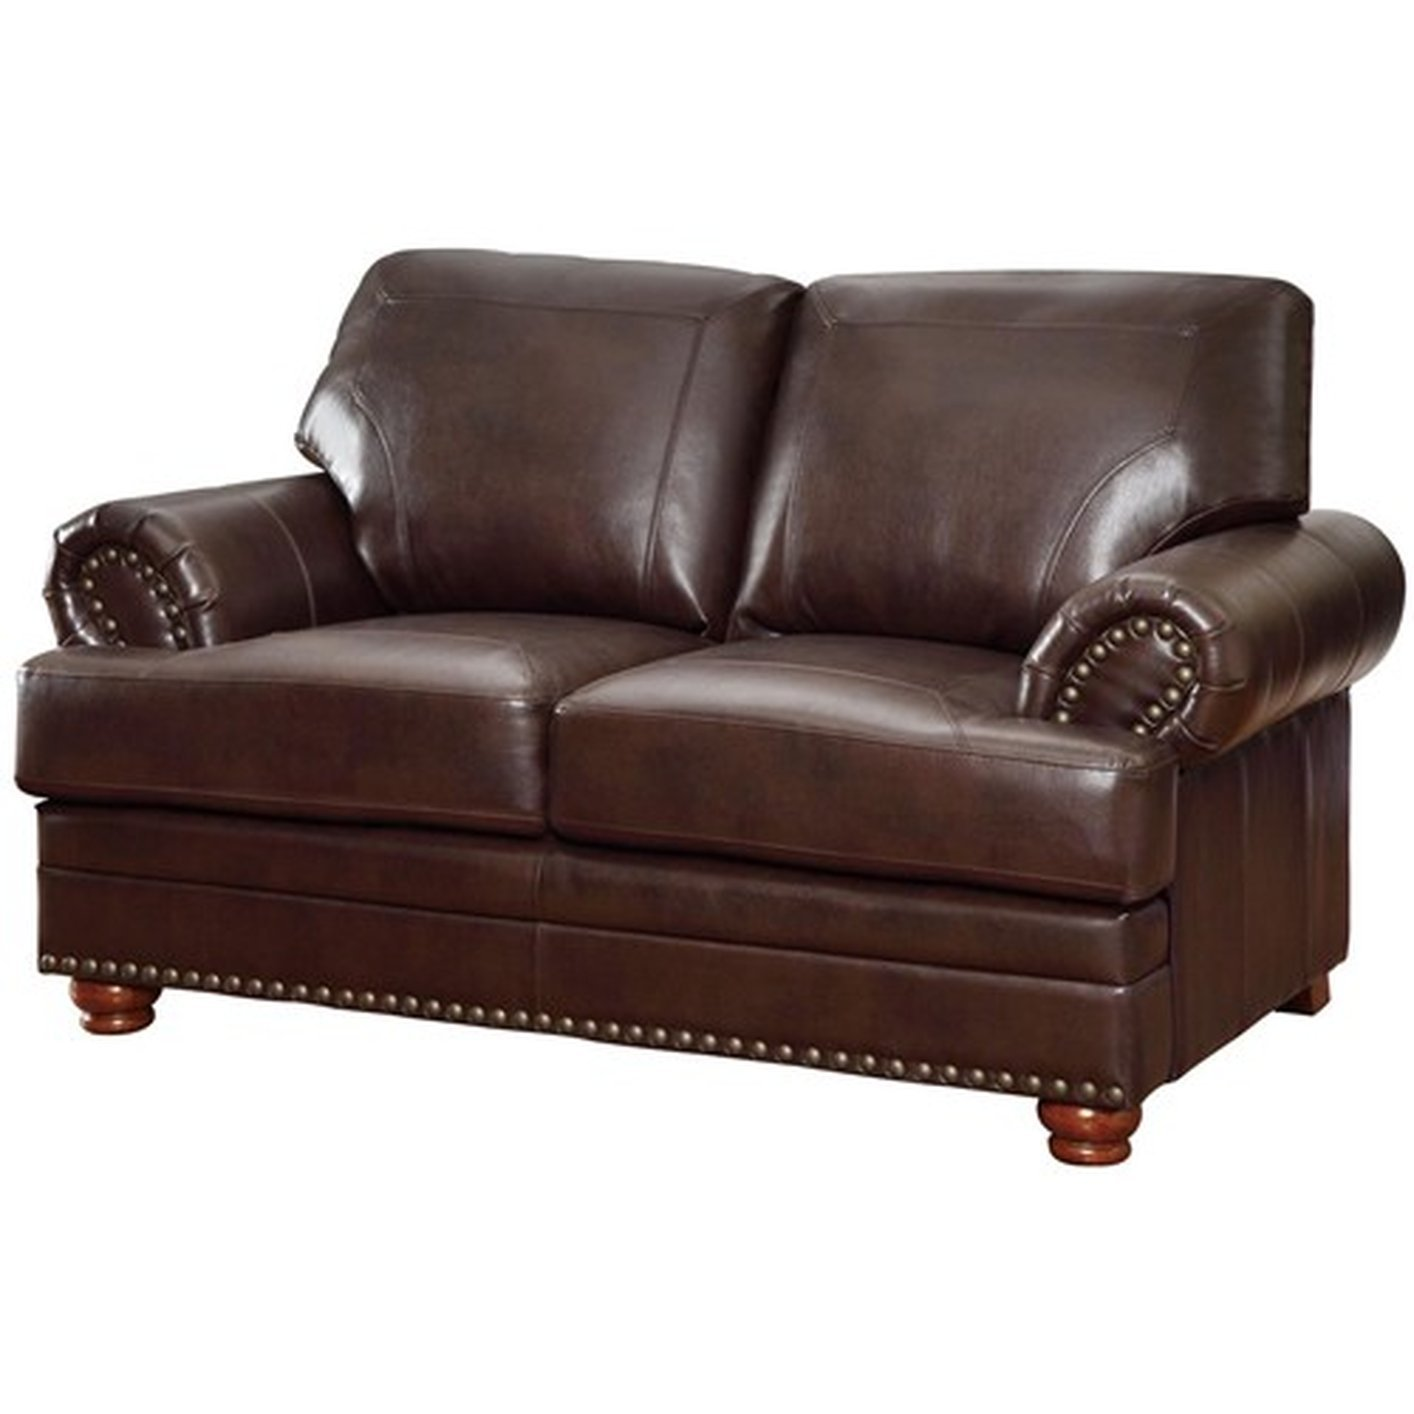 Coaster colton 504412 brown leather loveseat steal a sofa furniture outlet los angeles ca Chocolate loveseat